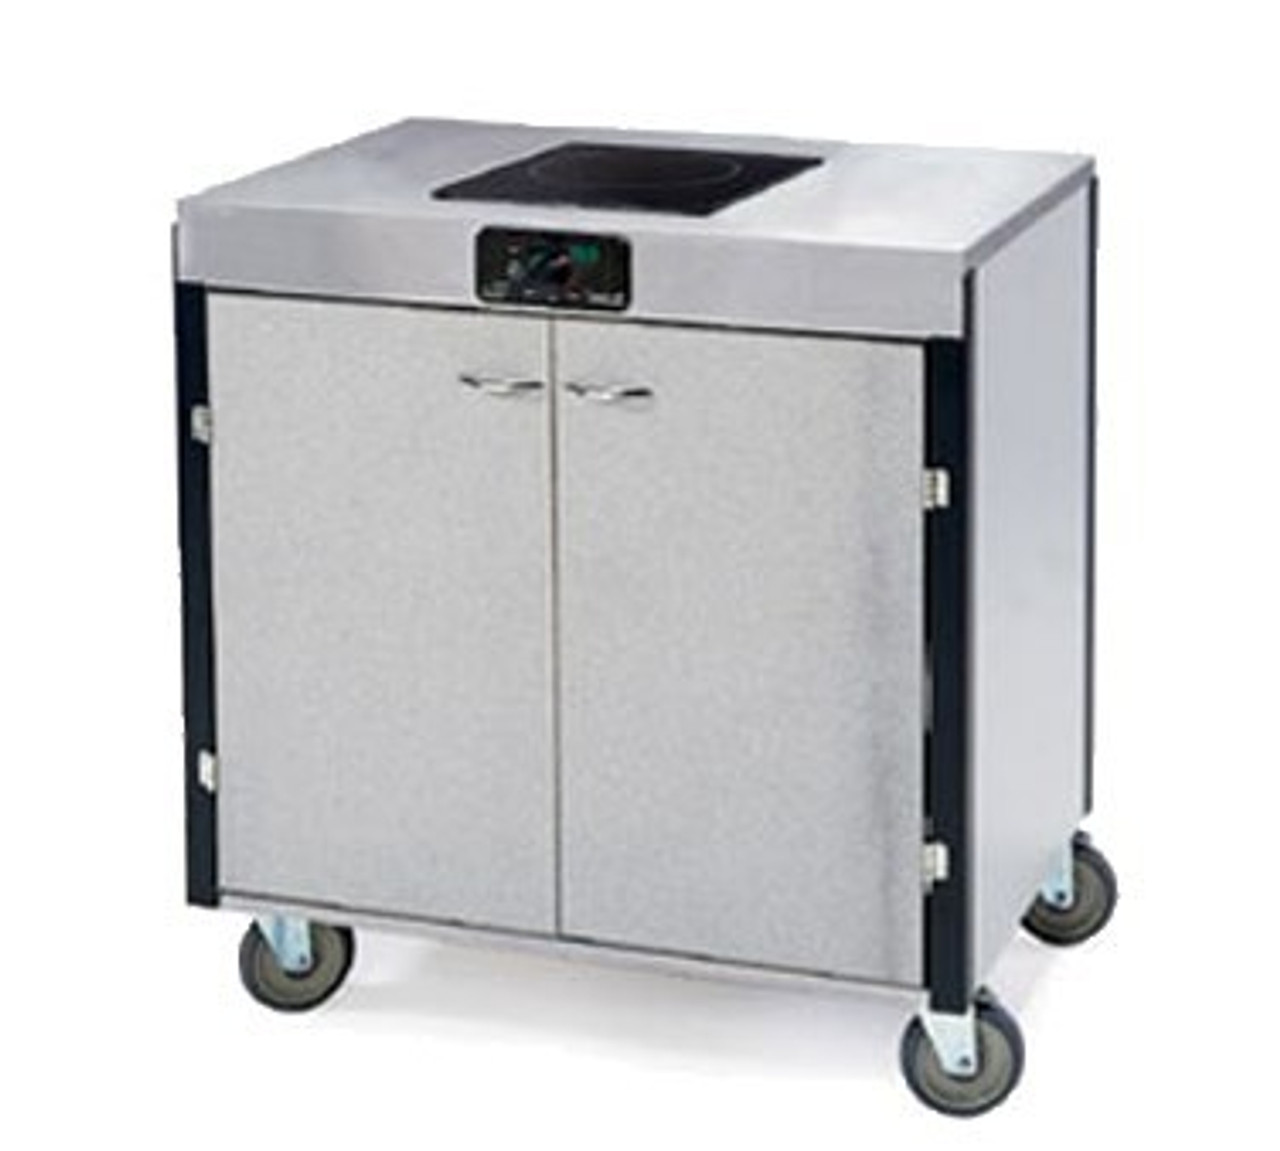 """MODEL 2060 Creation Express™ Station Mobile Cooking Cart, 34"""" x 22"""" x 35-1/2""""H, temperature range 90° - 440°F, LED control panel, (1) induction heat stove, without filtration system, stainless steel top, stainless steel interior with laminated exterior, interior shelf, with doors, 5"""" swivel No-Mark® polyurethane casters (2) with brakes, ETL"""